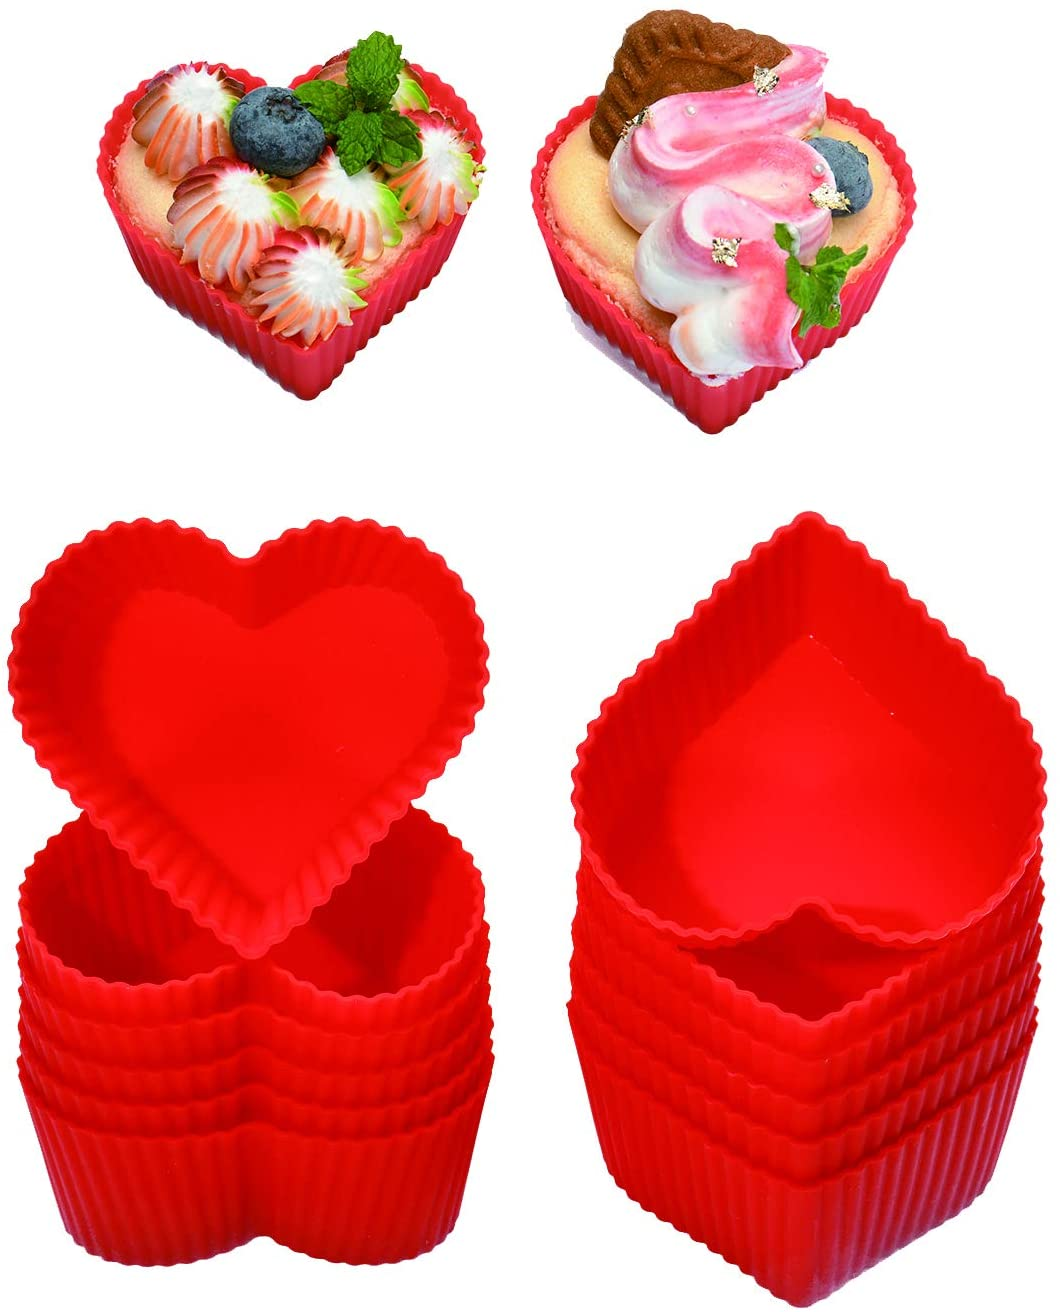 Silicone Baking Cups Cupcake Liners - Non-Stick Pastry Muffin Liner Molds,2.75 Inch Mini Cupcake Silicone Mold, Resusable Storage Container,Heart, 12 Pack